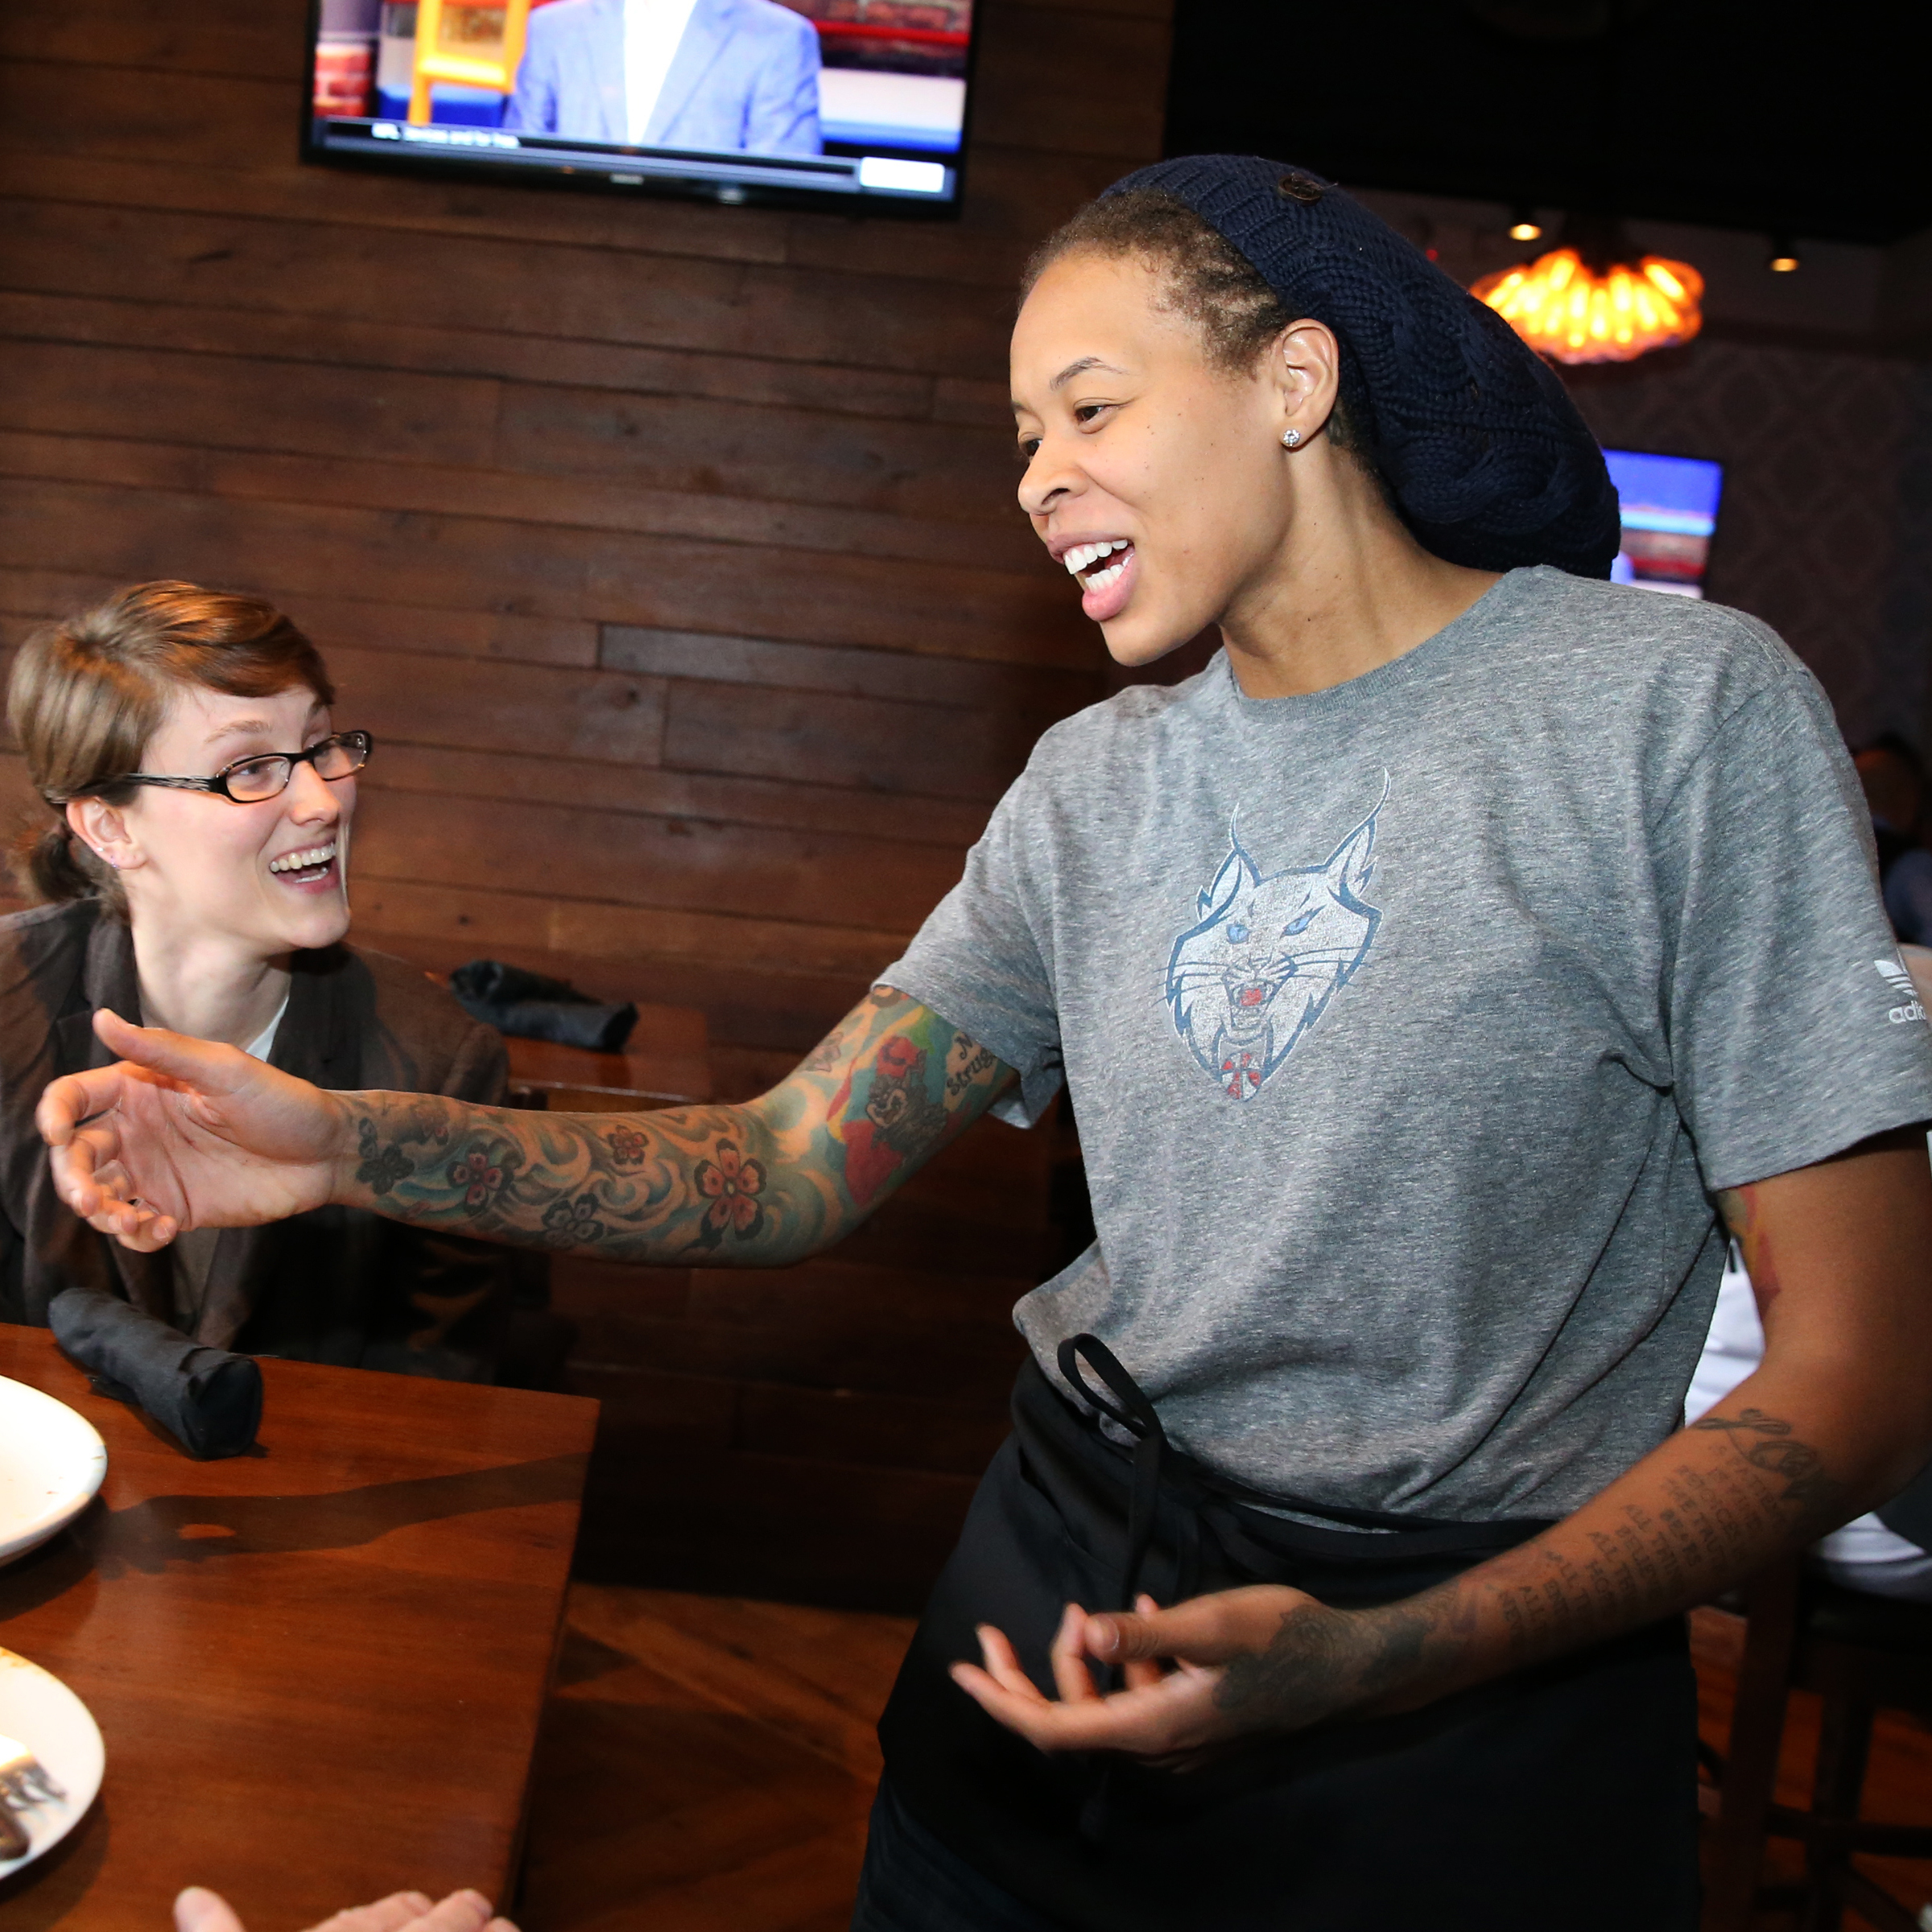 MINNEAPOLIS, MN - JUNE 3:  Seimone Augustus #33 of the Minnesota Lynx participates in the Tip-A-Lynx fundraiser to benefit the Minnesota Lynx Fastbreak Foundation on June 3, 2015 at the Loop West End Bar & Restaurant in Minneapolis, Minnesota.  NOTE TO USER: User expressly acknowledges and agrees that, by downloading and or using this Photograph, user is consenting to the terms and conditions of the Getty Images License Agreement. Mandatory Copyright Notice: Copyright 2015 NBAE (Photo by David Sherman/NBAE via Getty Images)